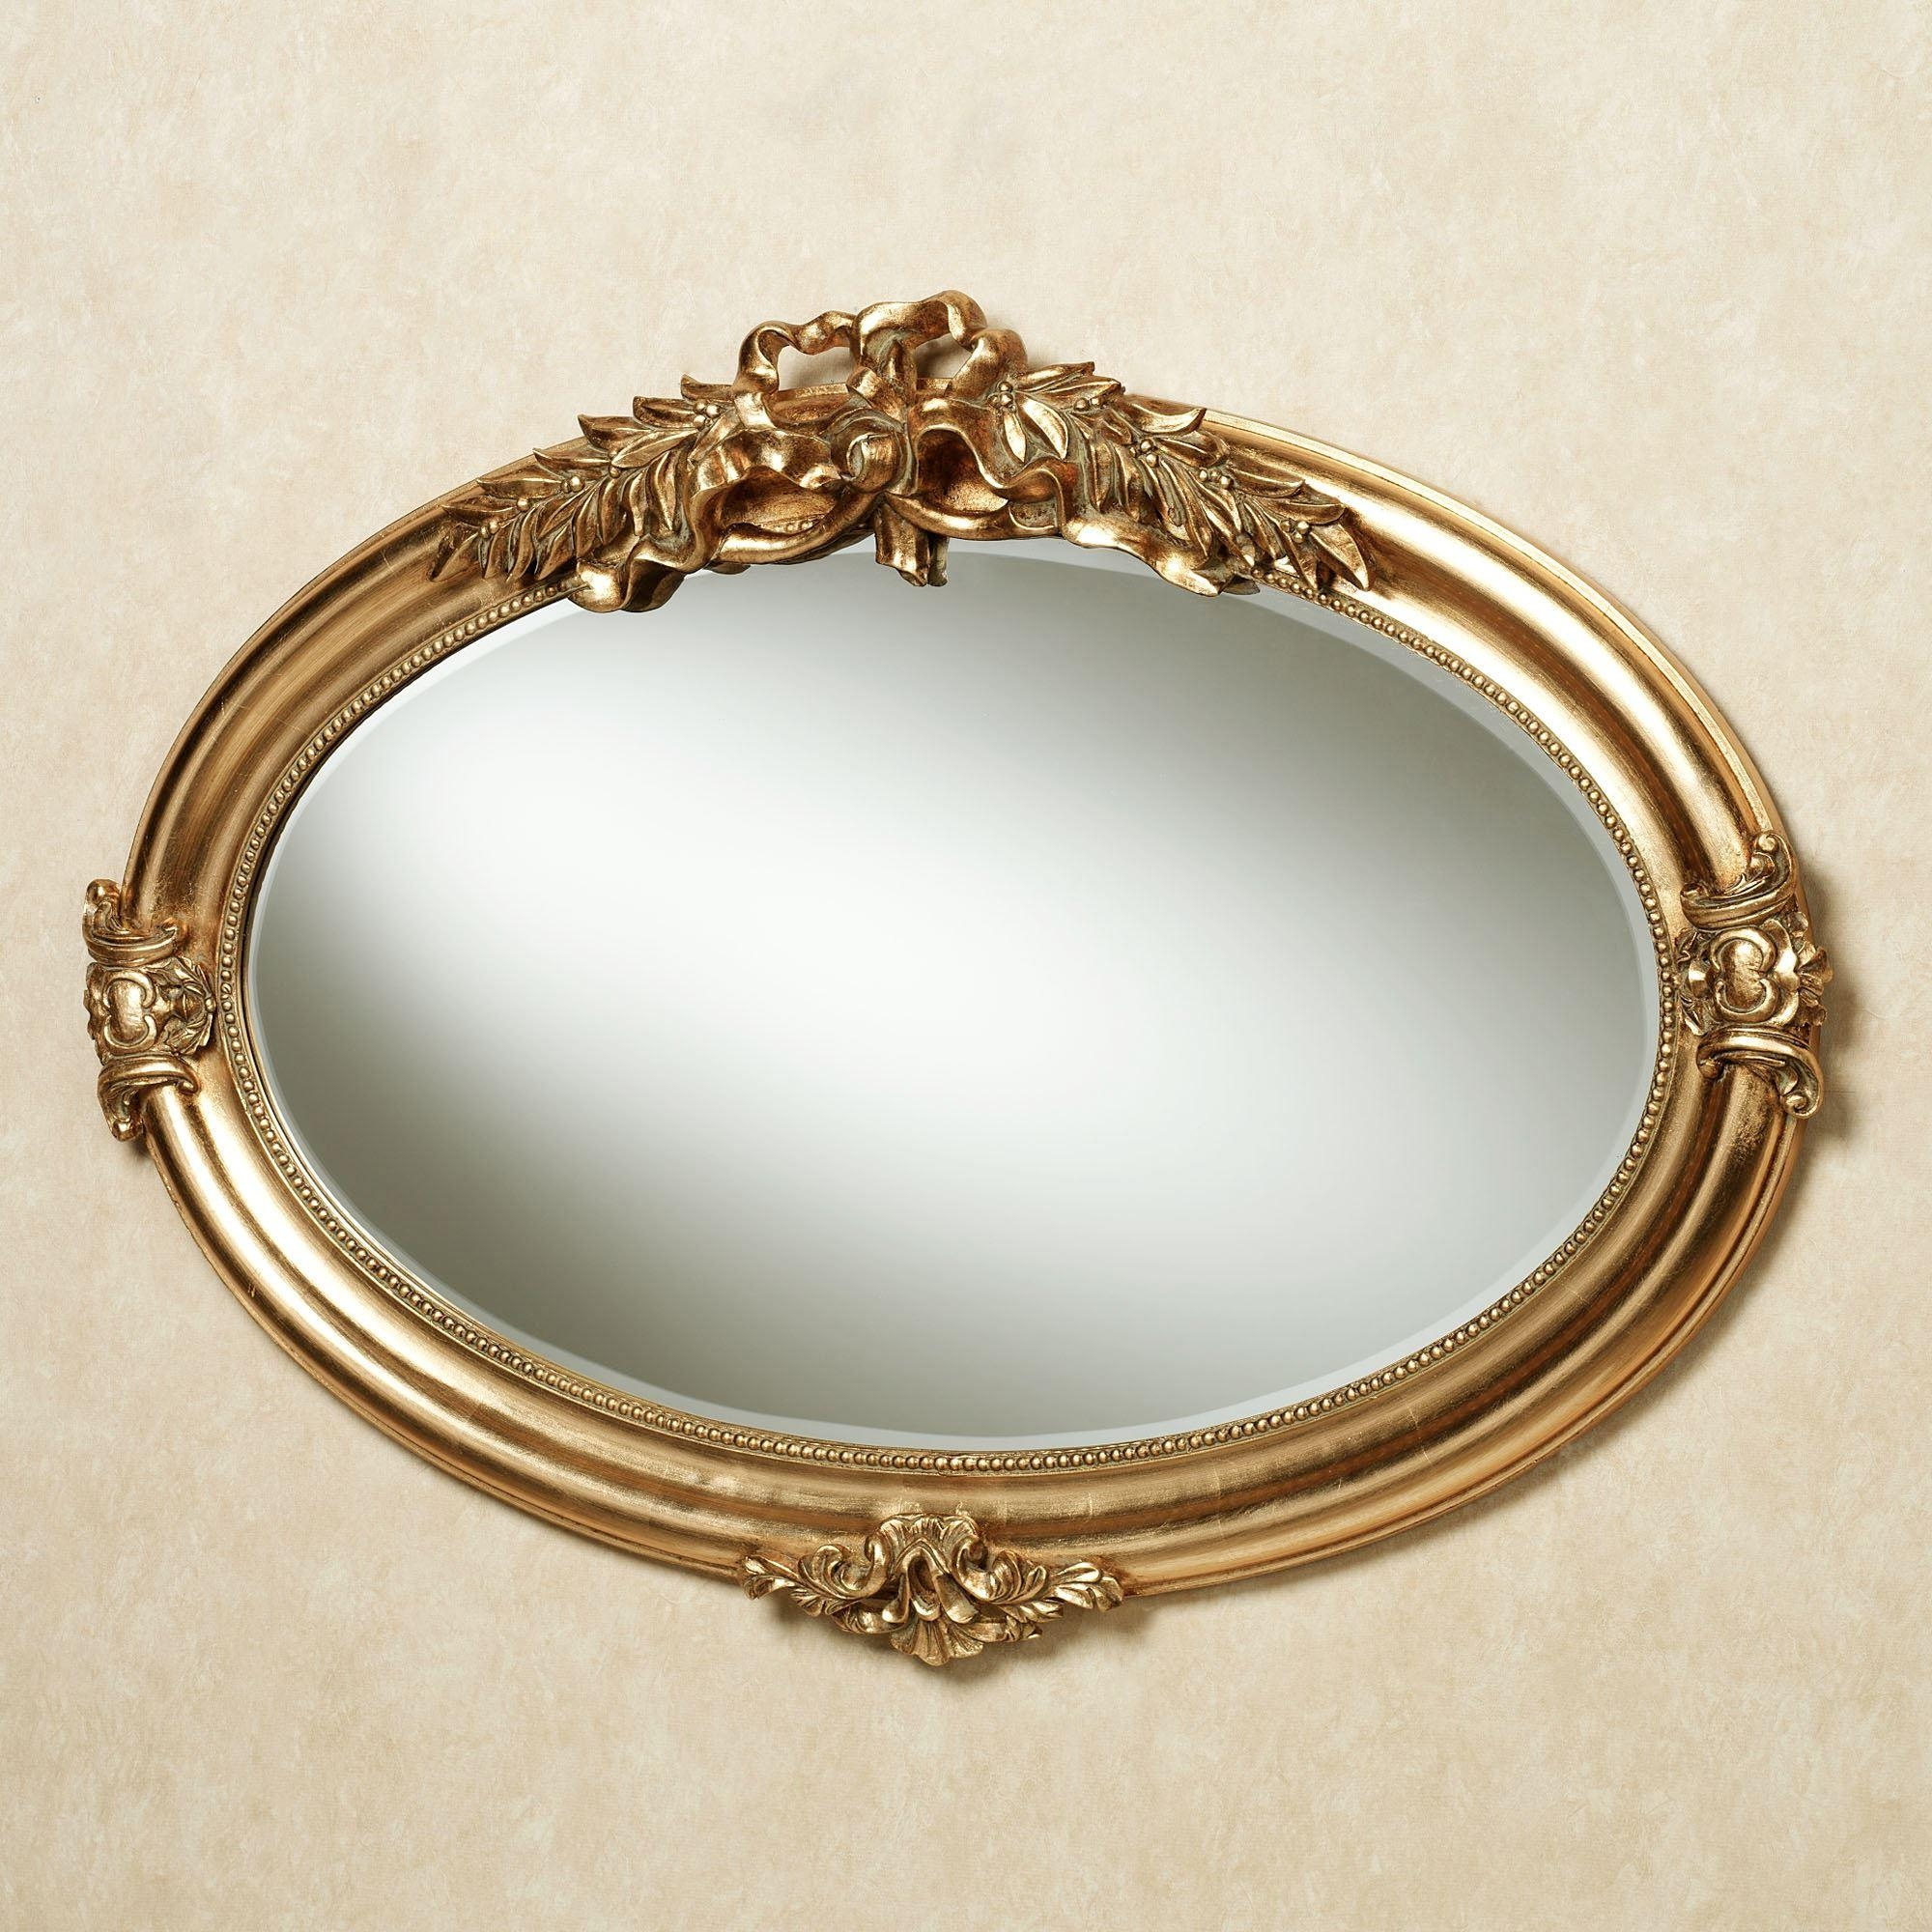 Marsciano Horizontal Oval Wall Mirror Intended For Gold Oval Mirrors (Image 14 of 20)